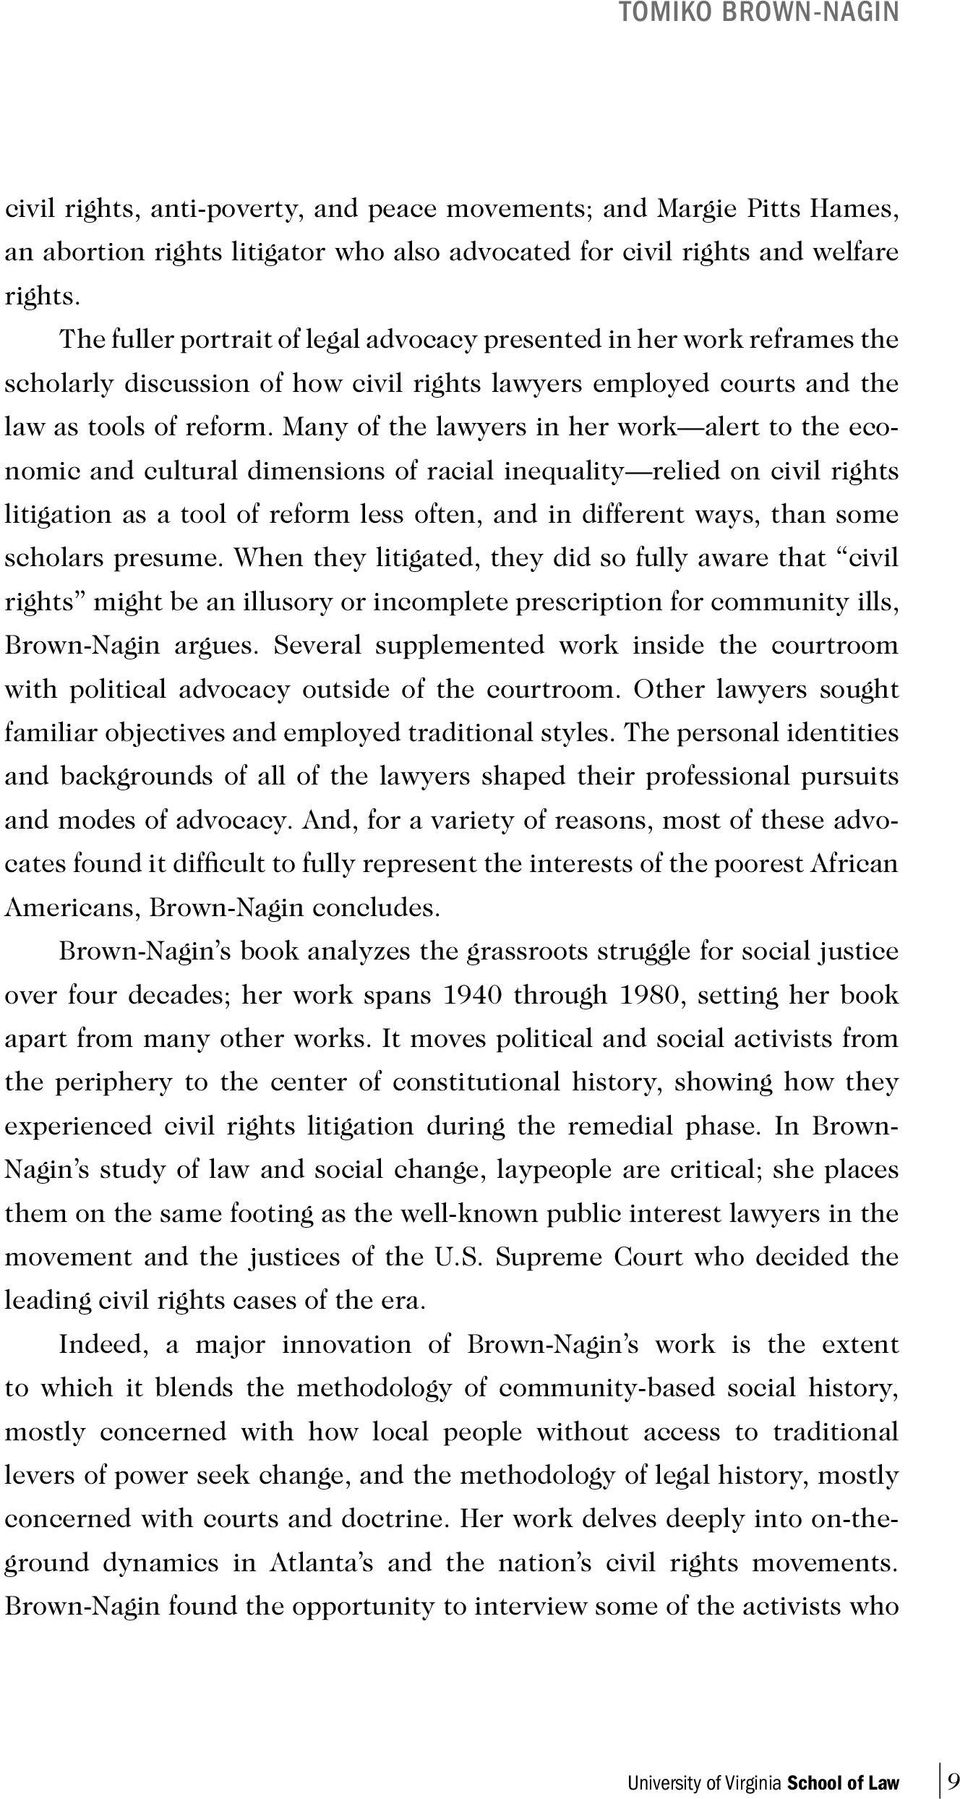 Many of the lawyers in her work alert to the economic and cultural dimensions of racial inequality relied on civil rights litigation as a tool of reform less often, and in different ways, than some